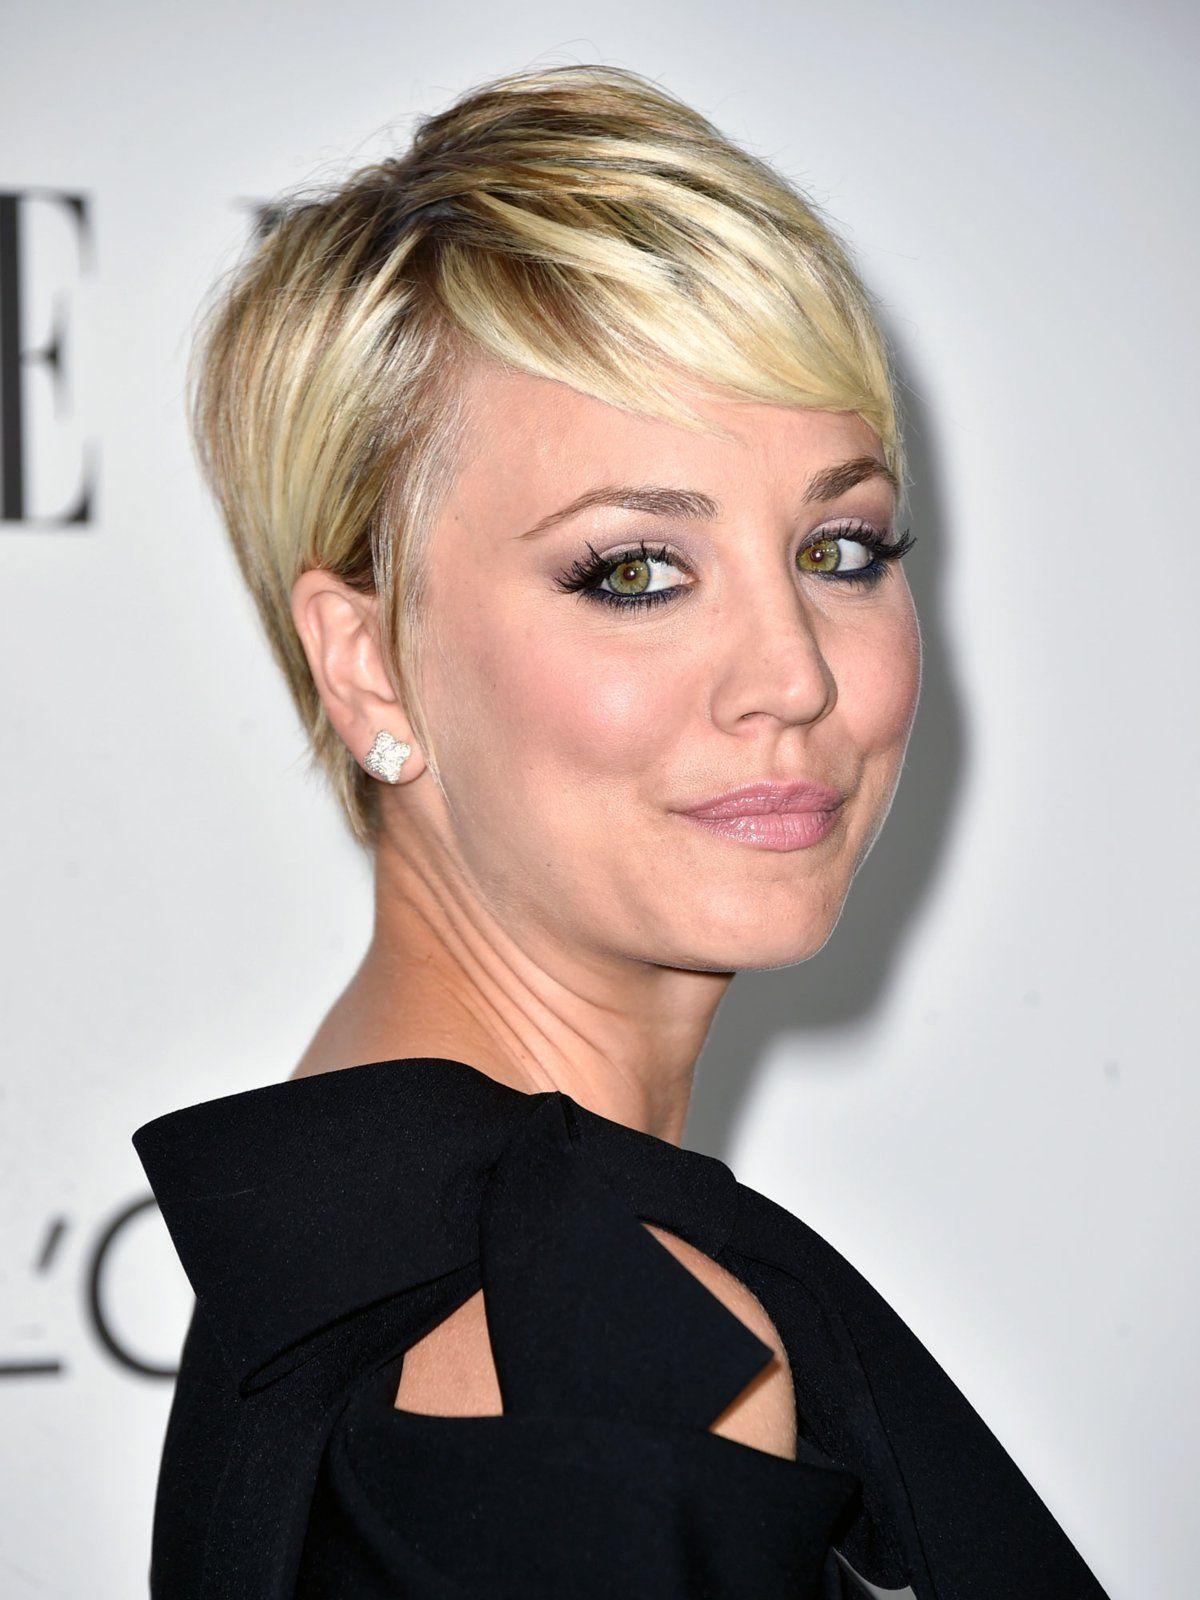 Kaley Cuoco: Pixie Cut | Obsessed With Pixies And Buzzcuts ...